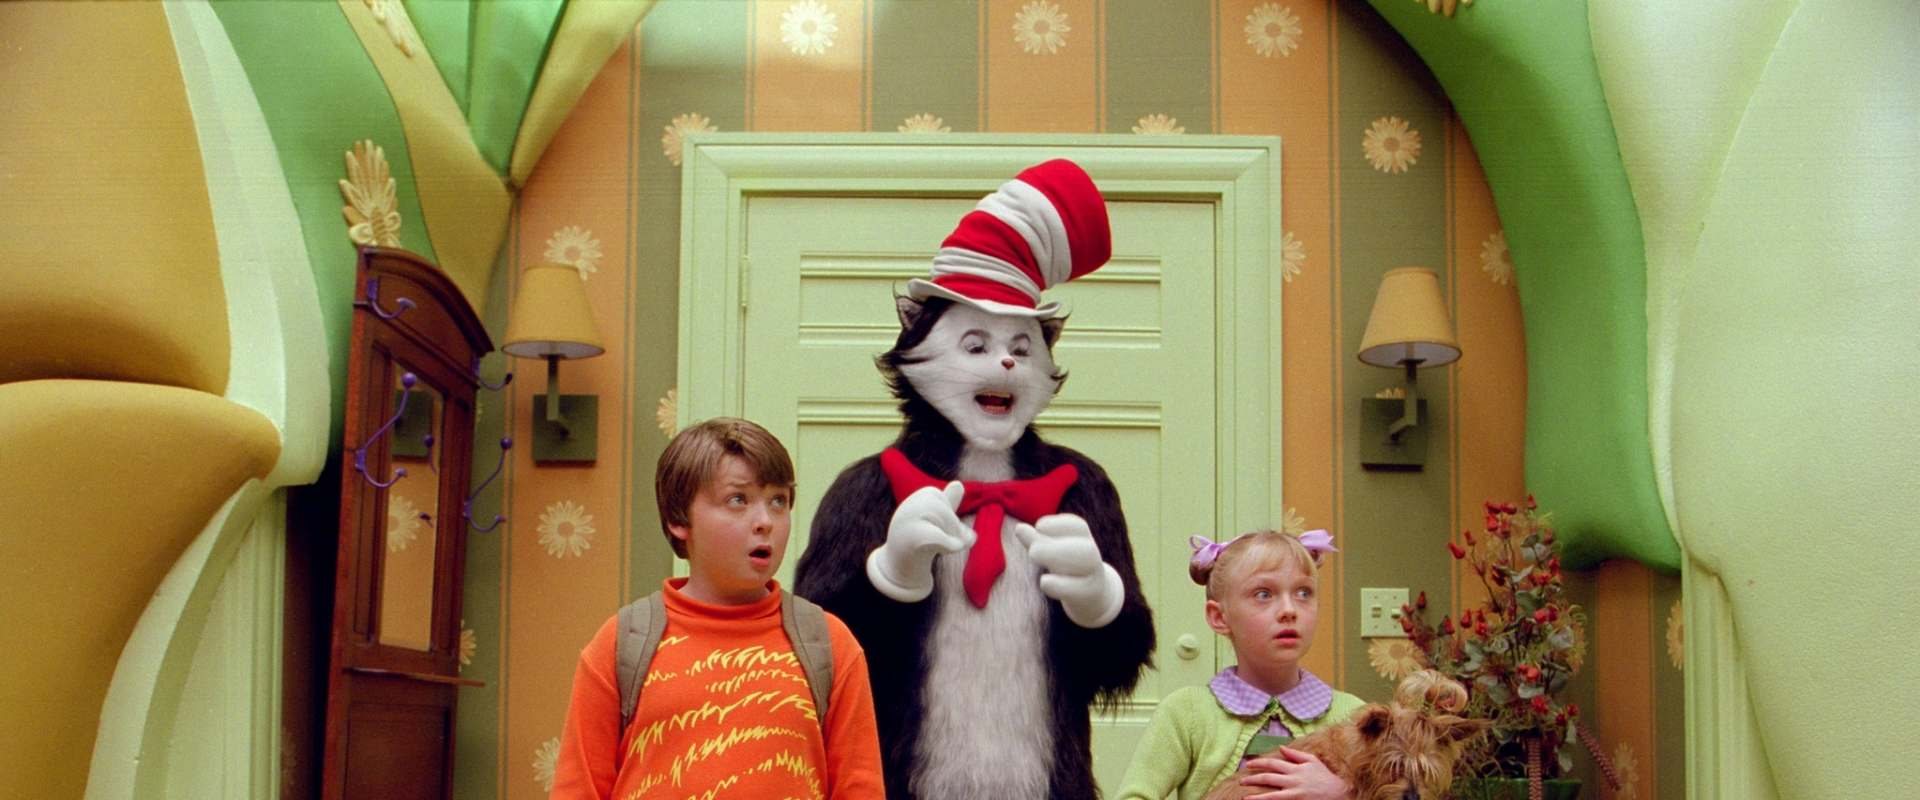 The Cat in the Hat background 1